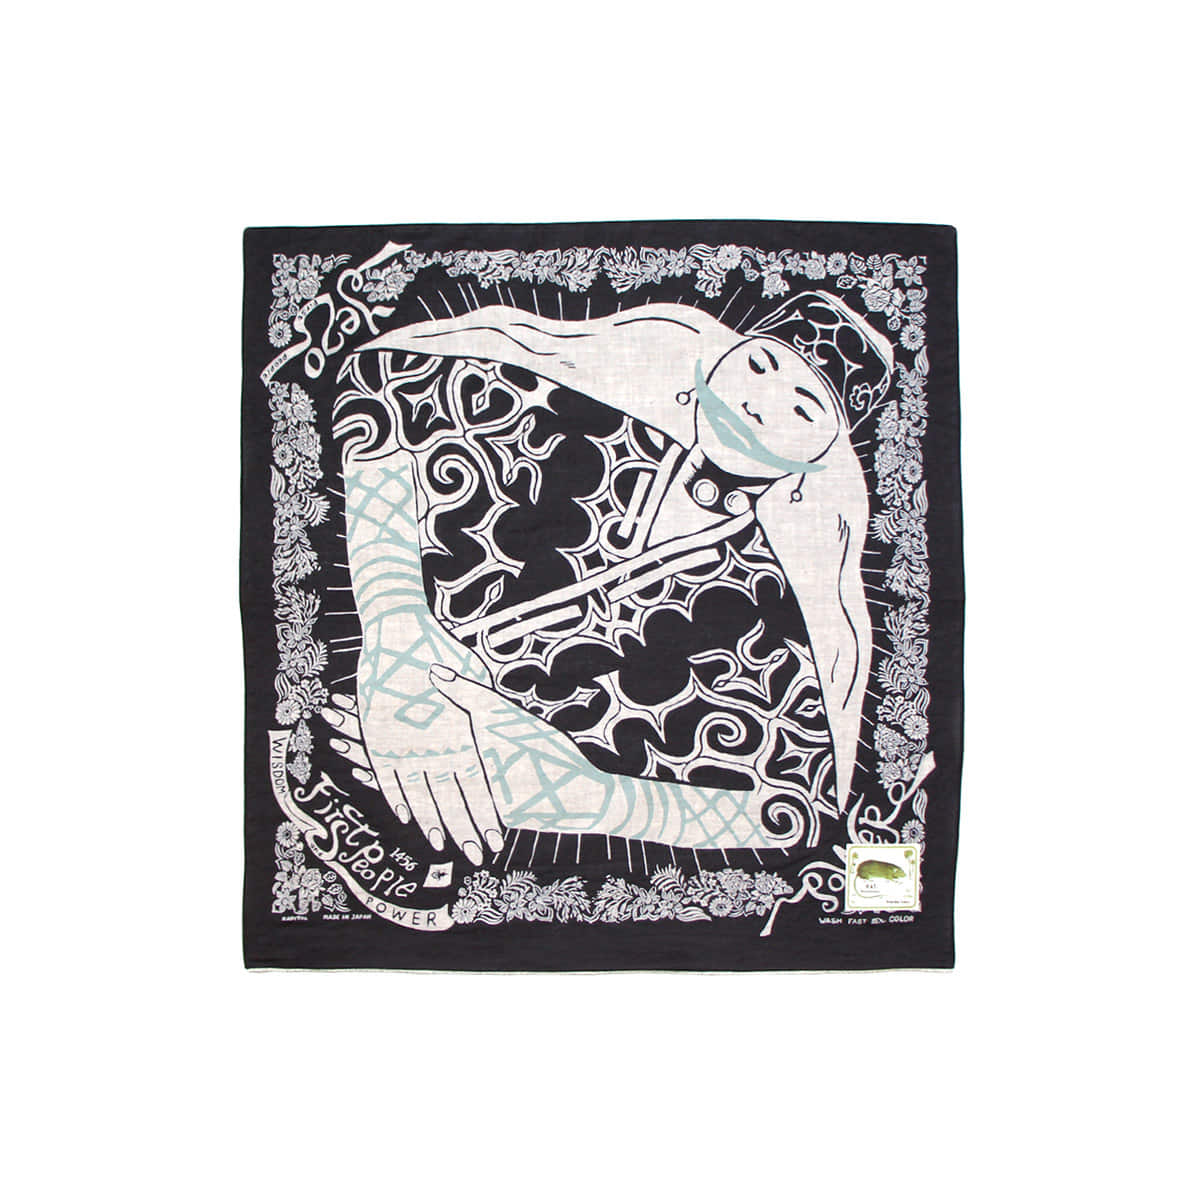 [KAPITAL] FAST COLOR SELVEDGE BANDANA (AINU WOMAN) 'BLACK'